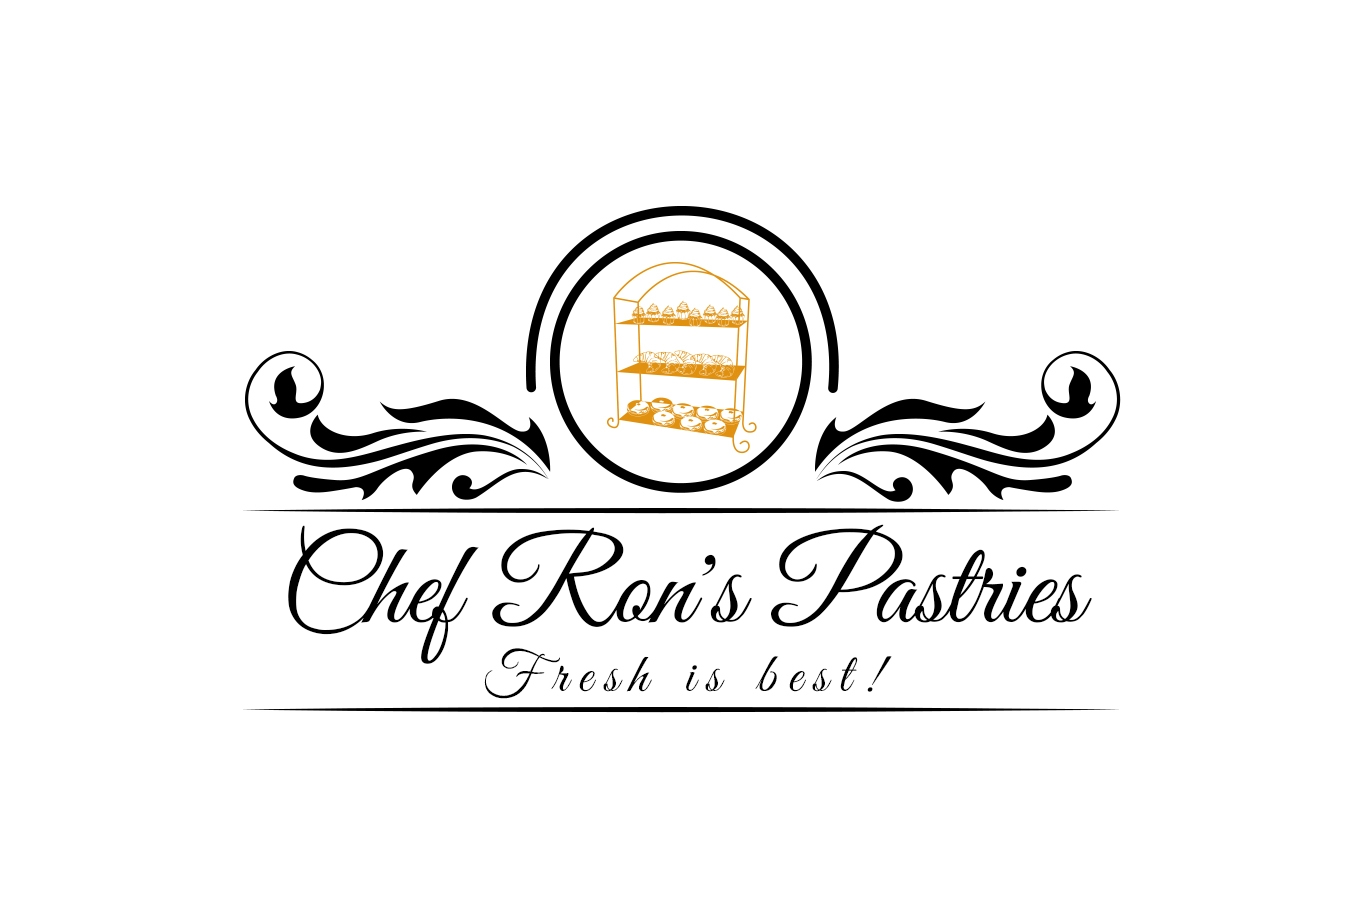 Chef Ron's Pastries